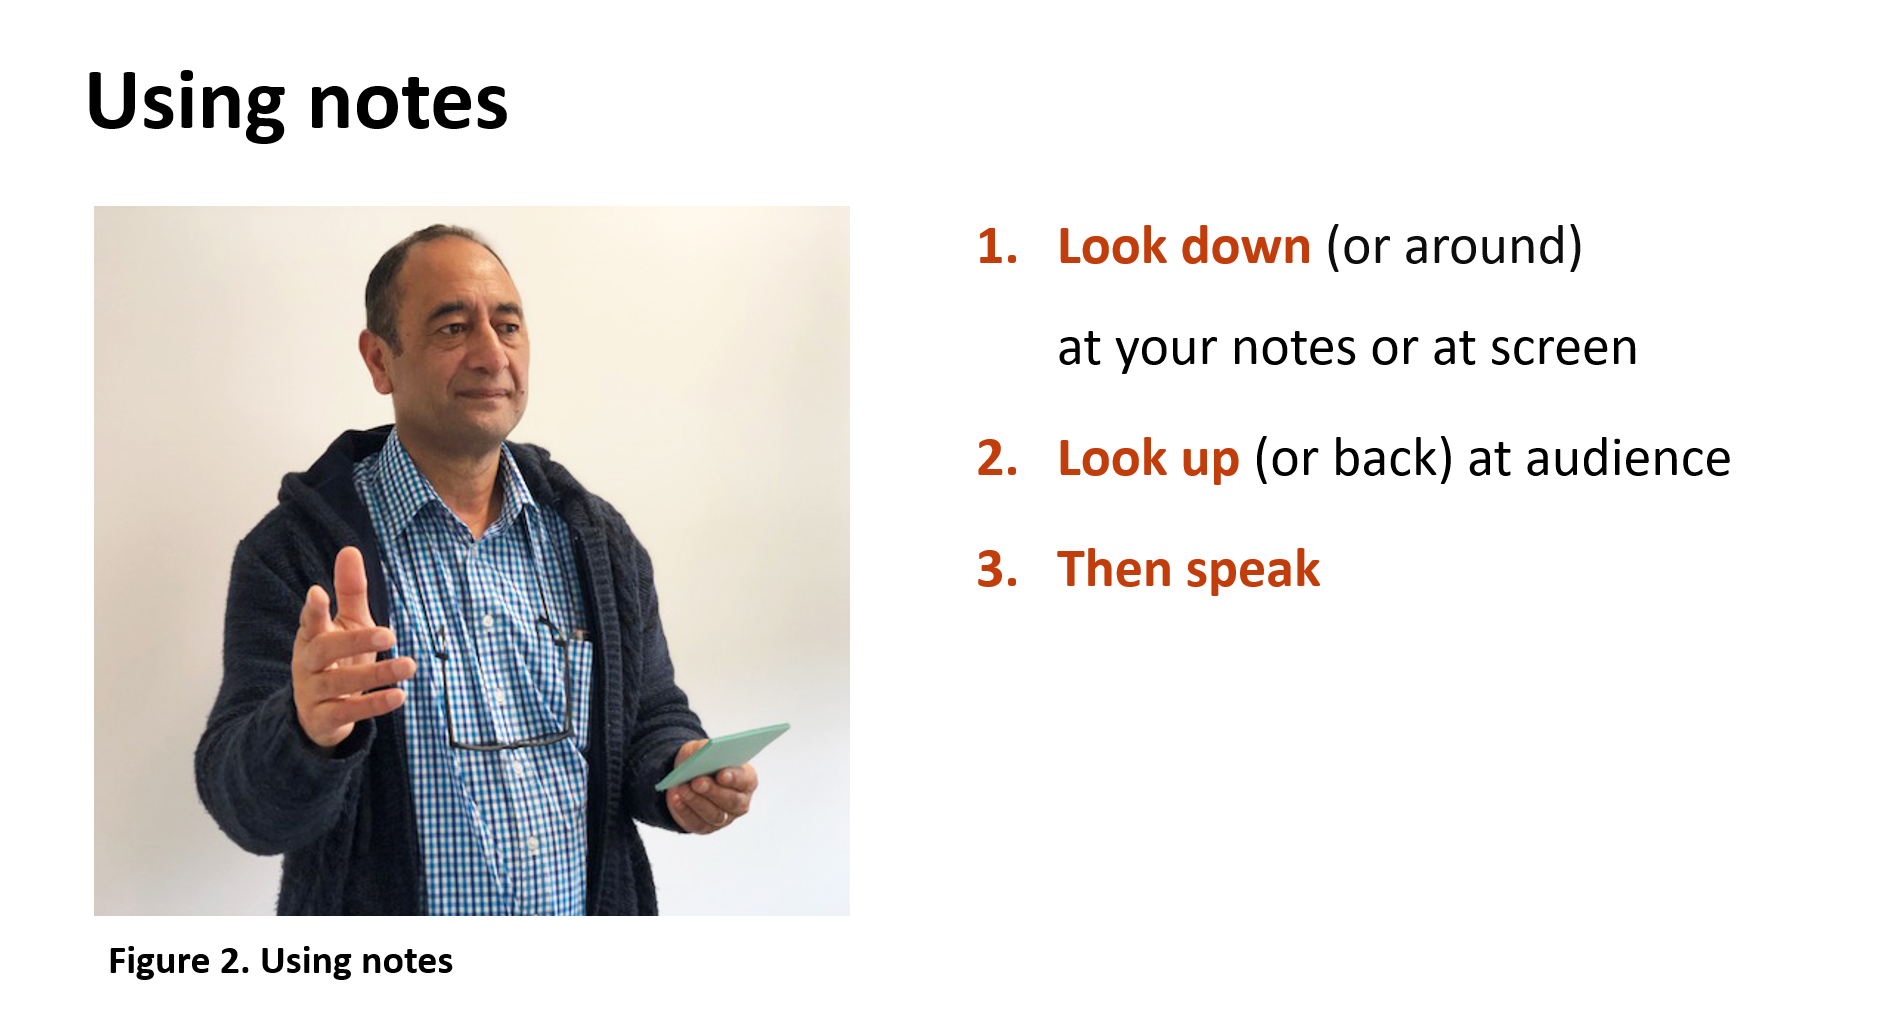 Using your own image in a slide